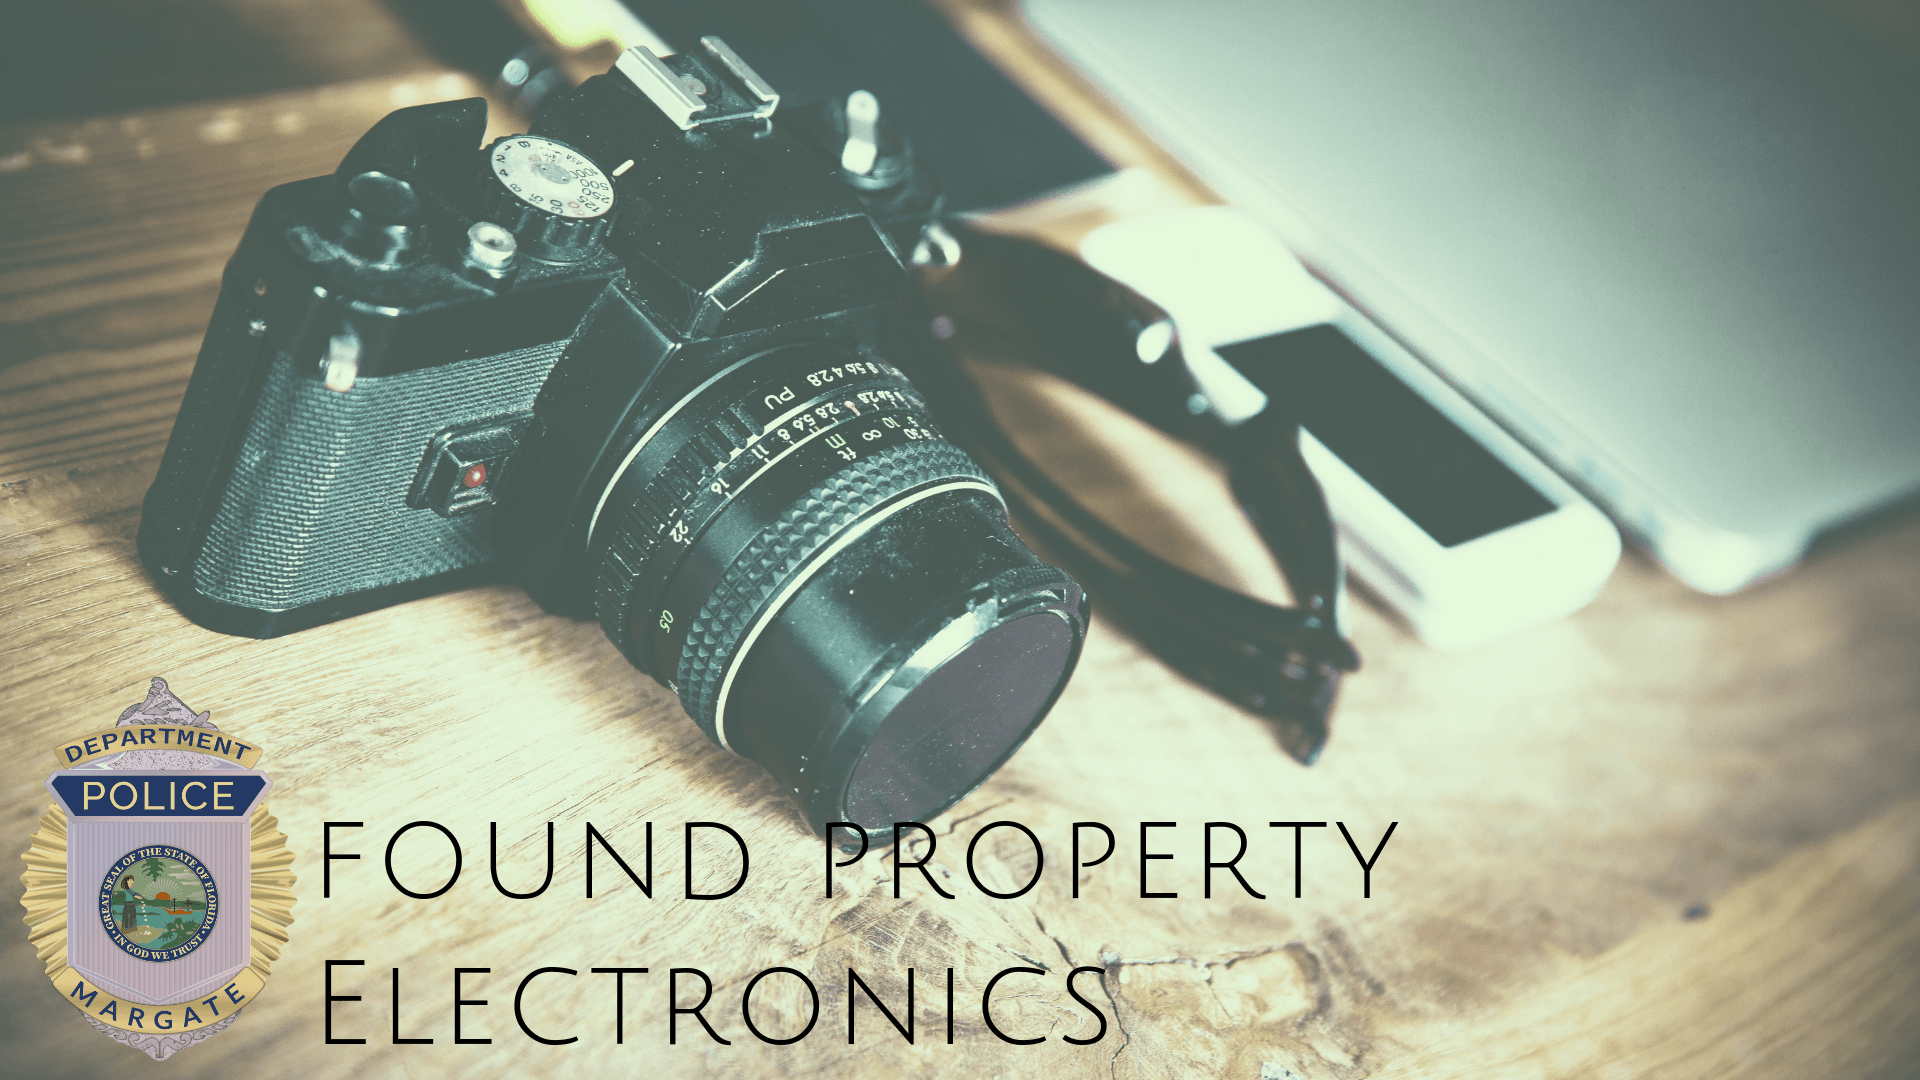 found property - Electronics